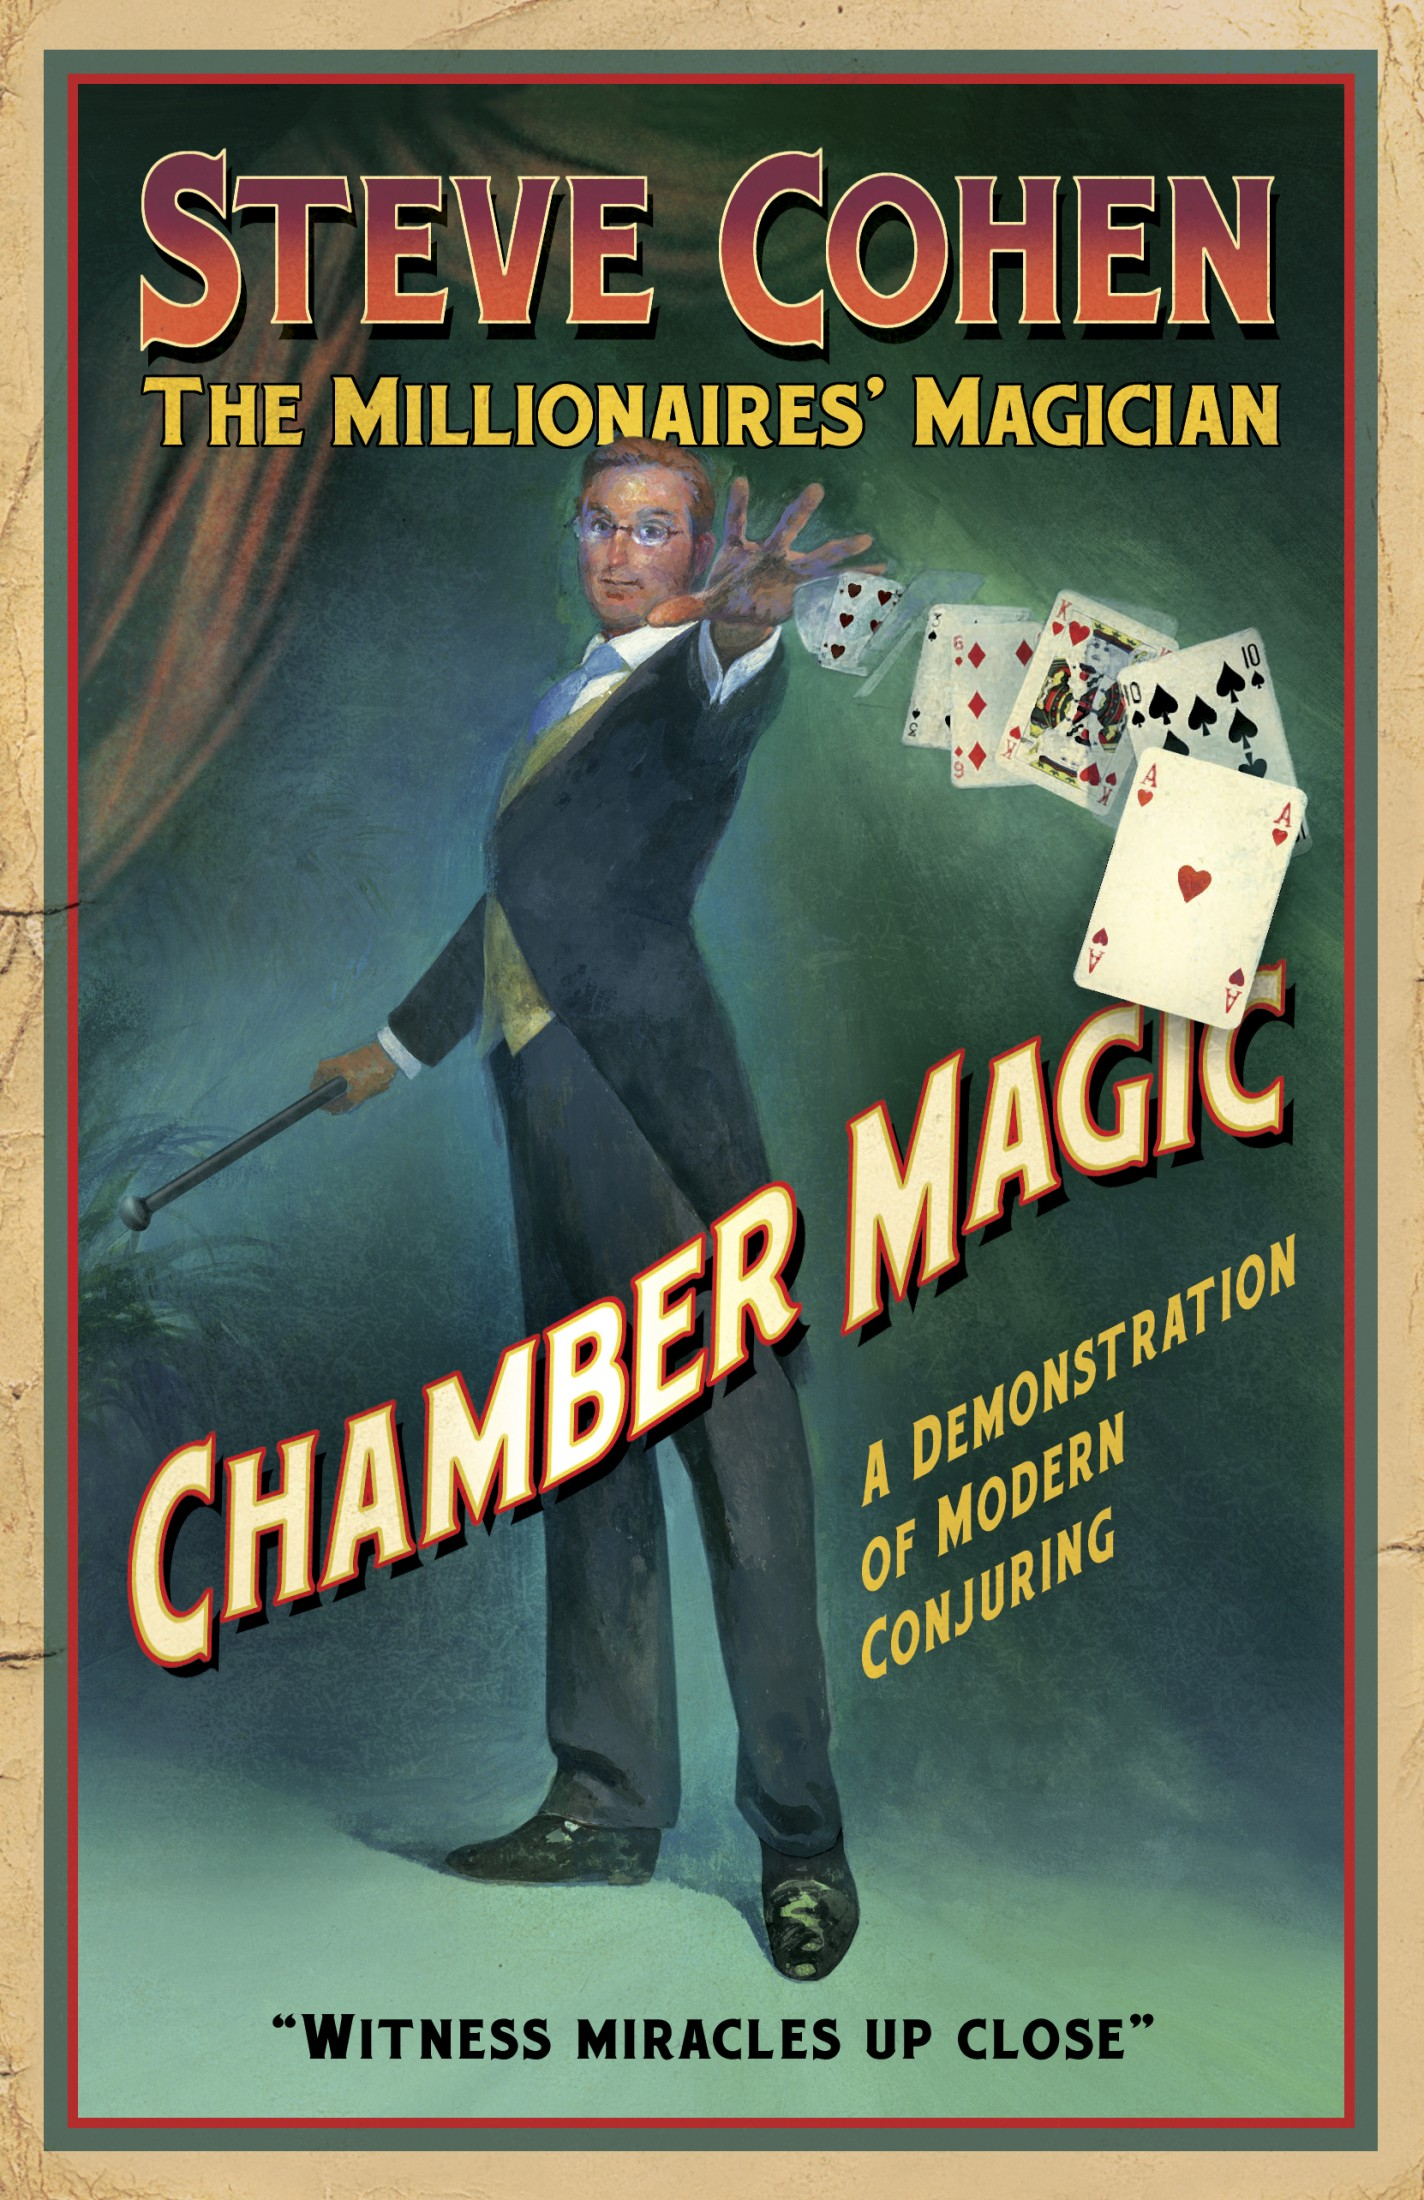 Magic Shows in NYC